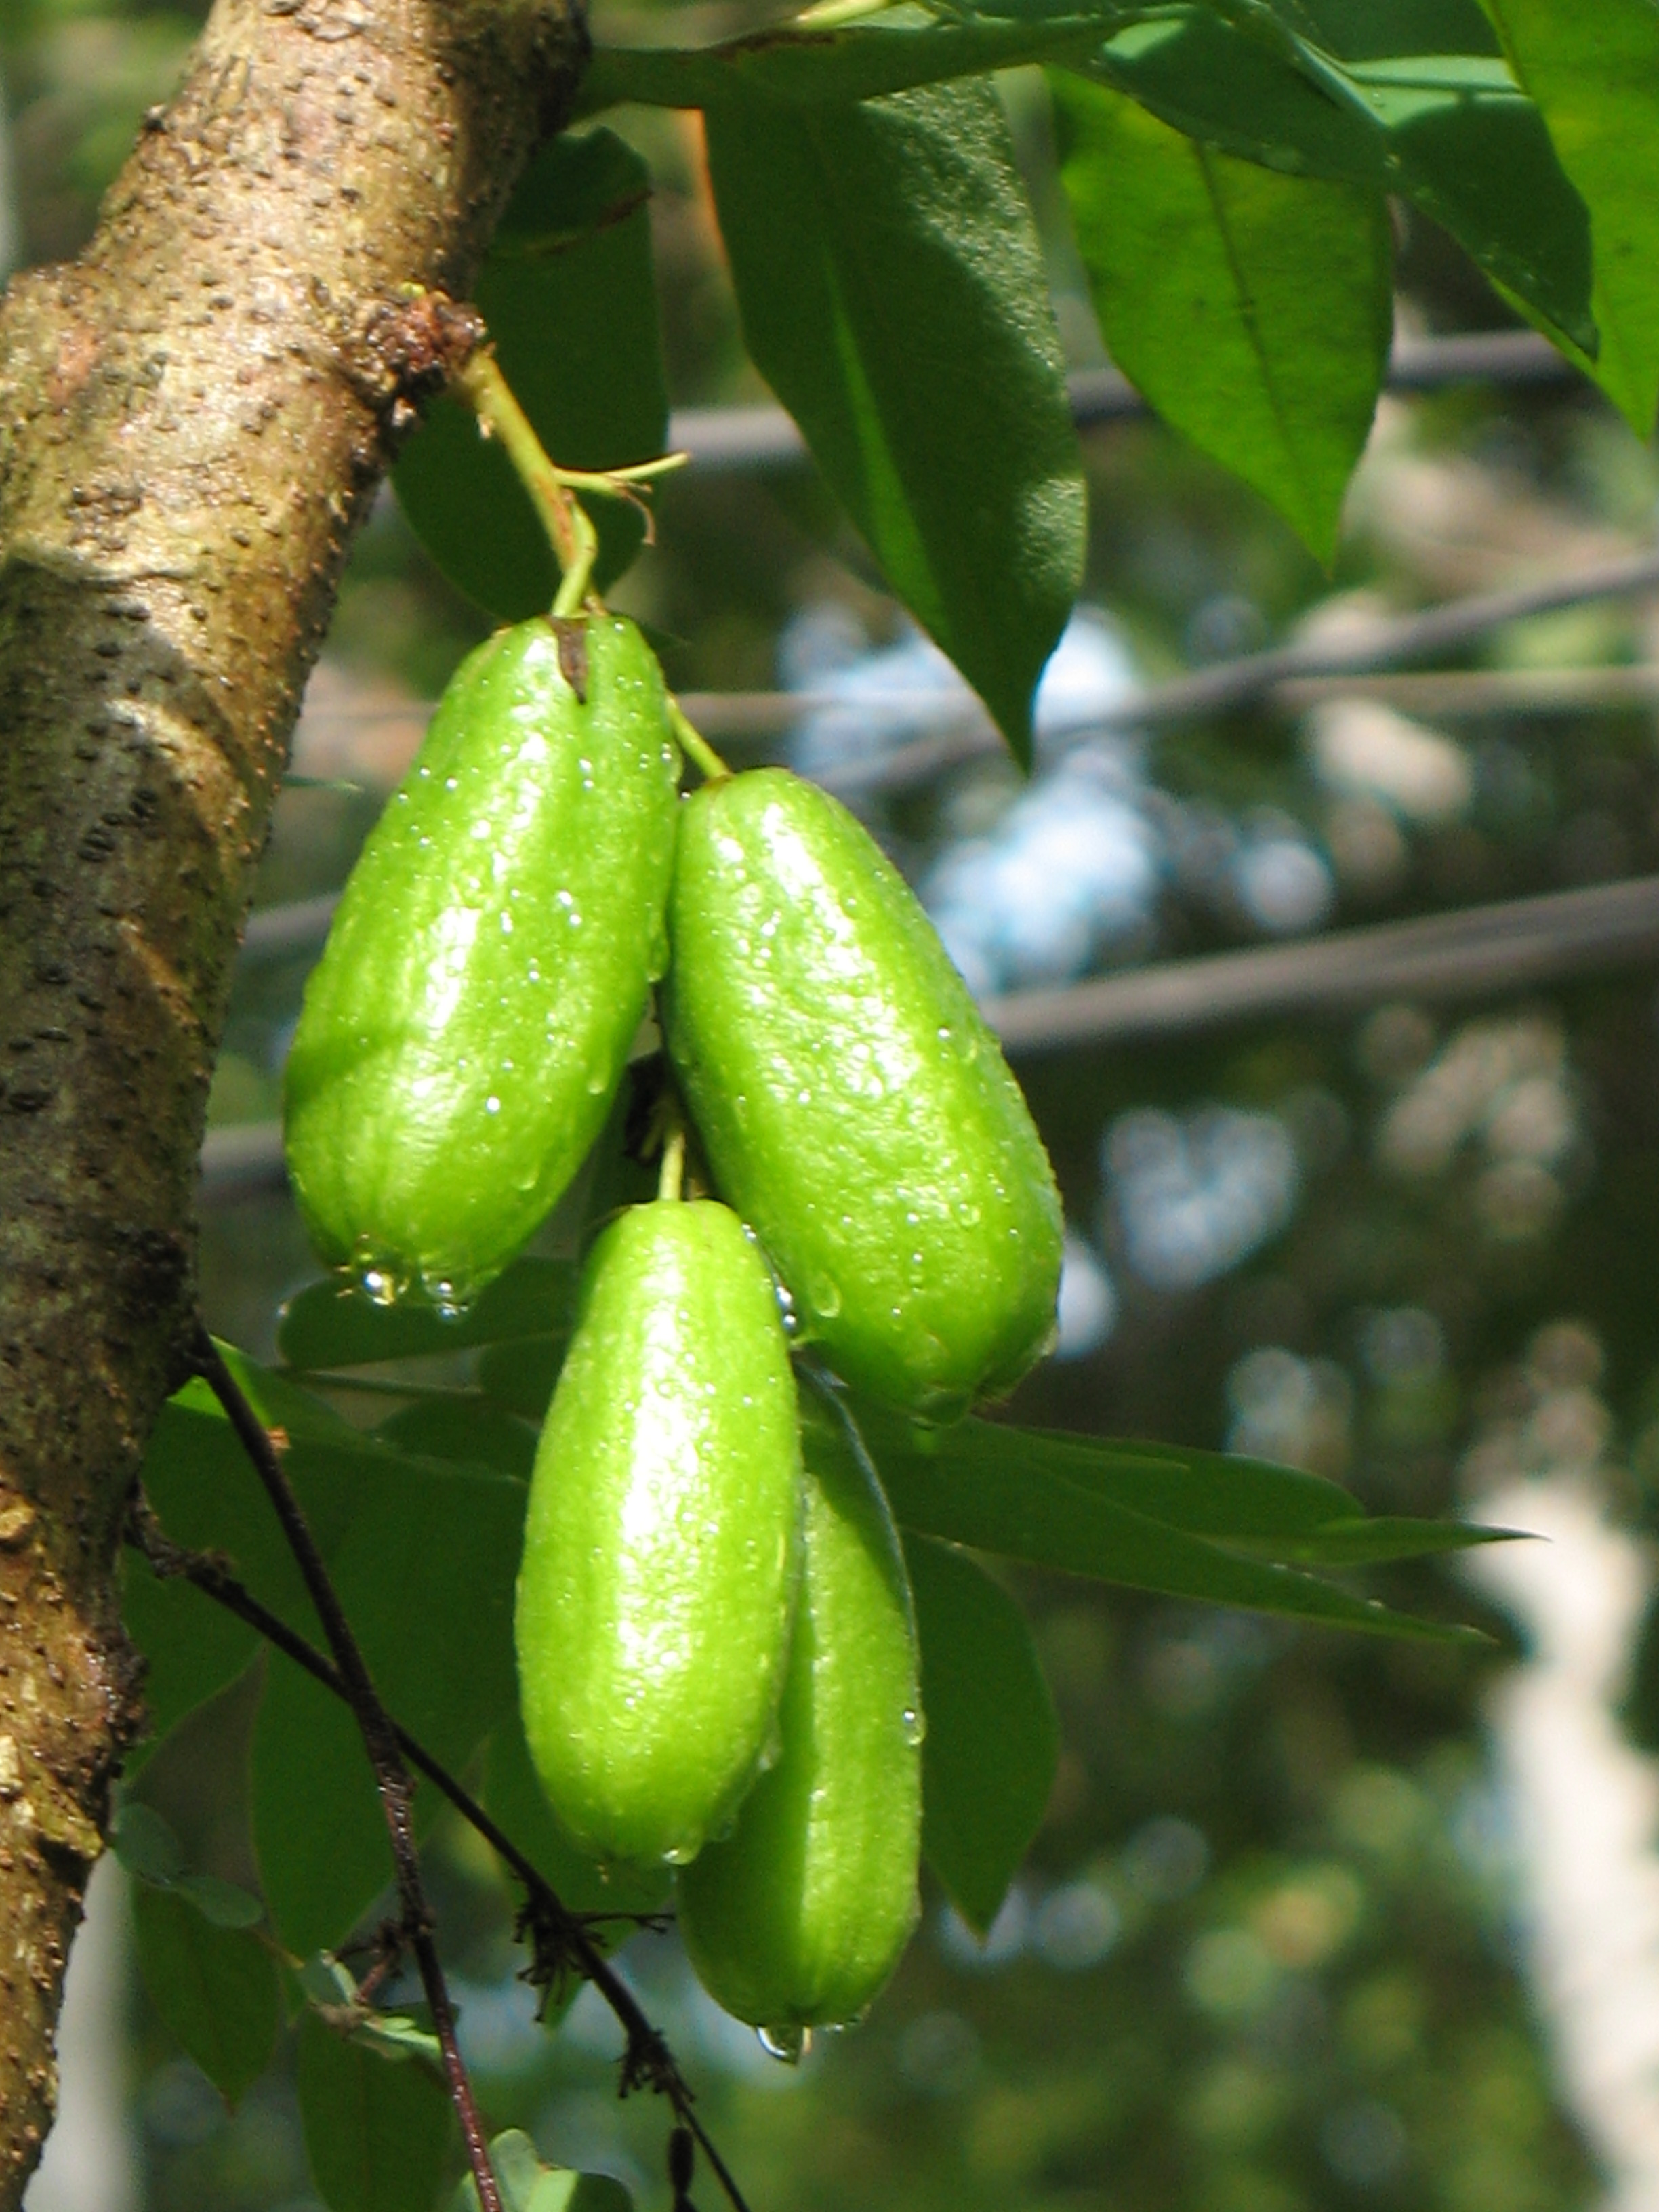 http://upload.wikimedia.org/wikipedia/commons/b/b9/Averrhoa_bilimbi_fruit_by_Sugeesh.jpg